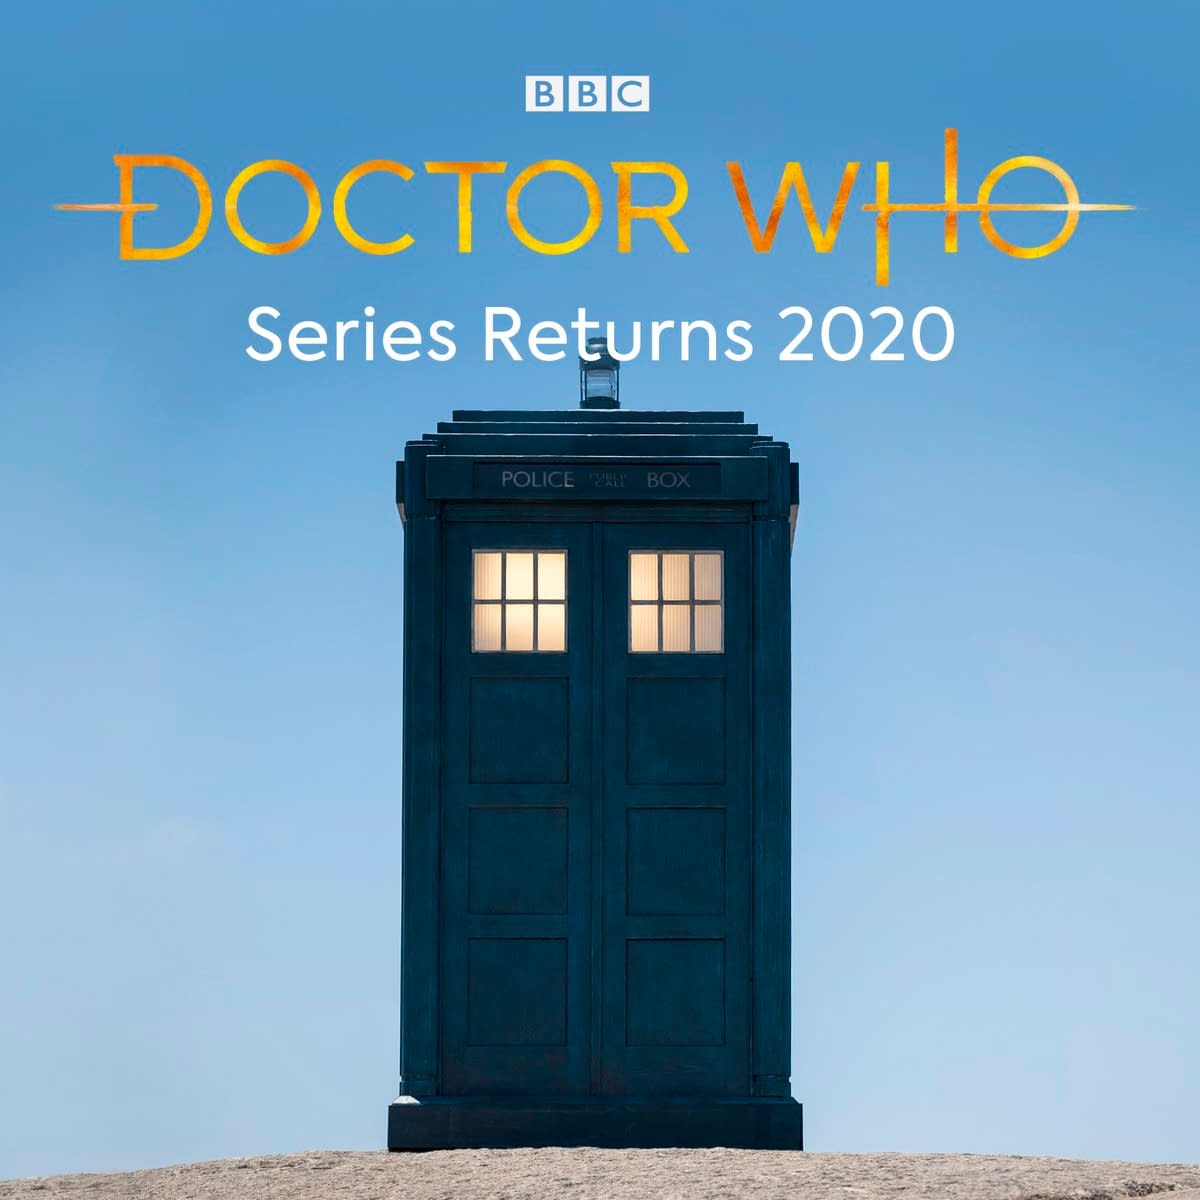 doctorwho series 12 production